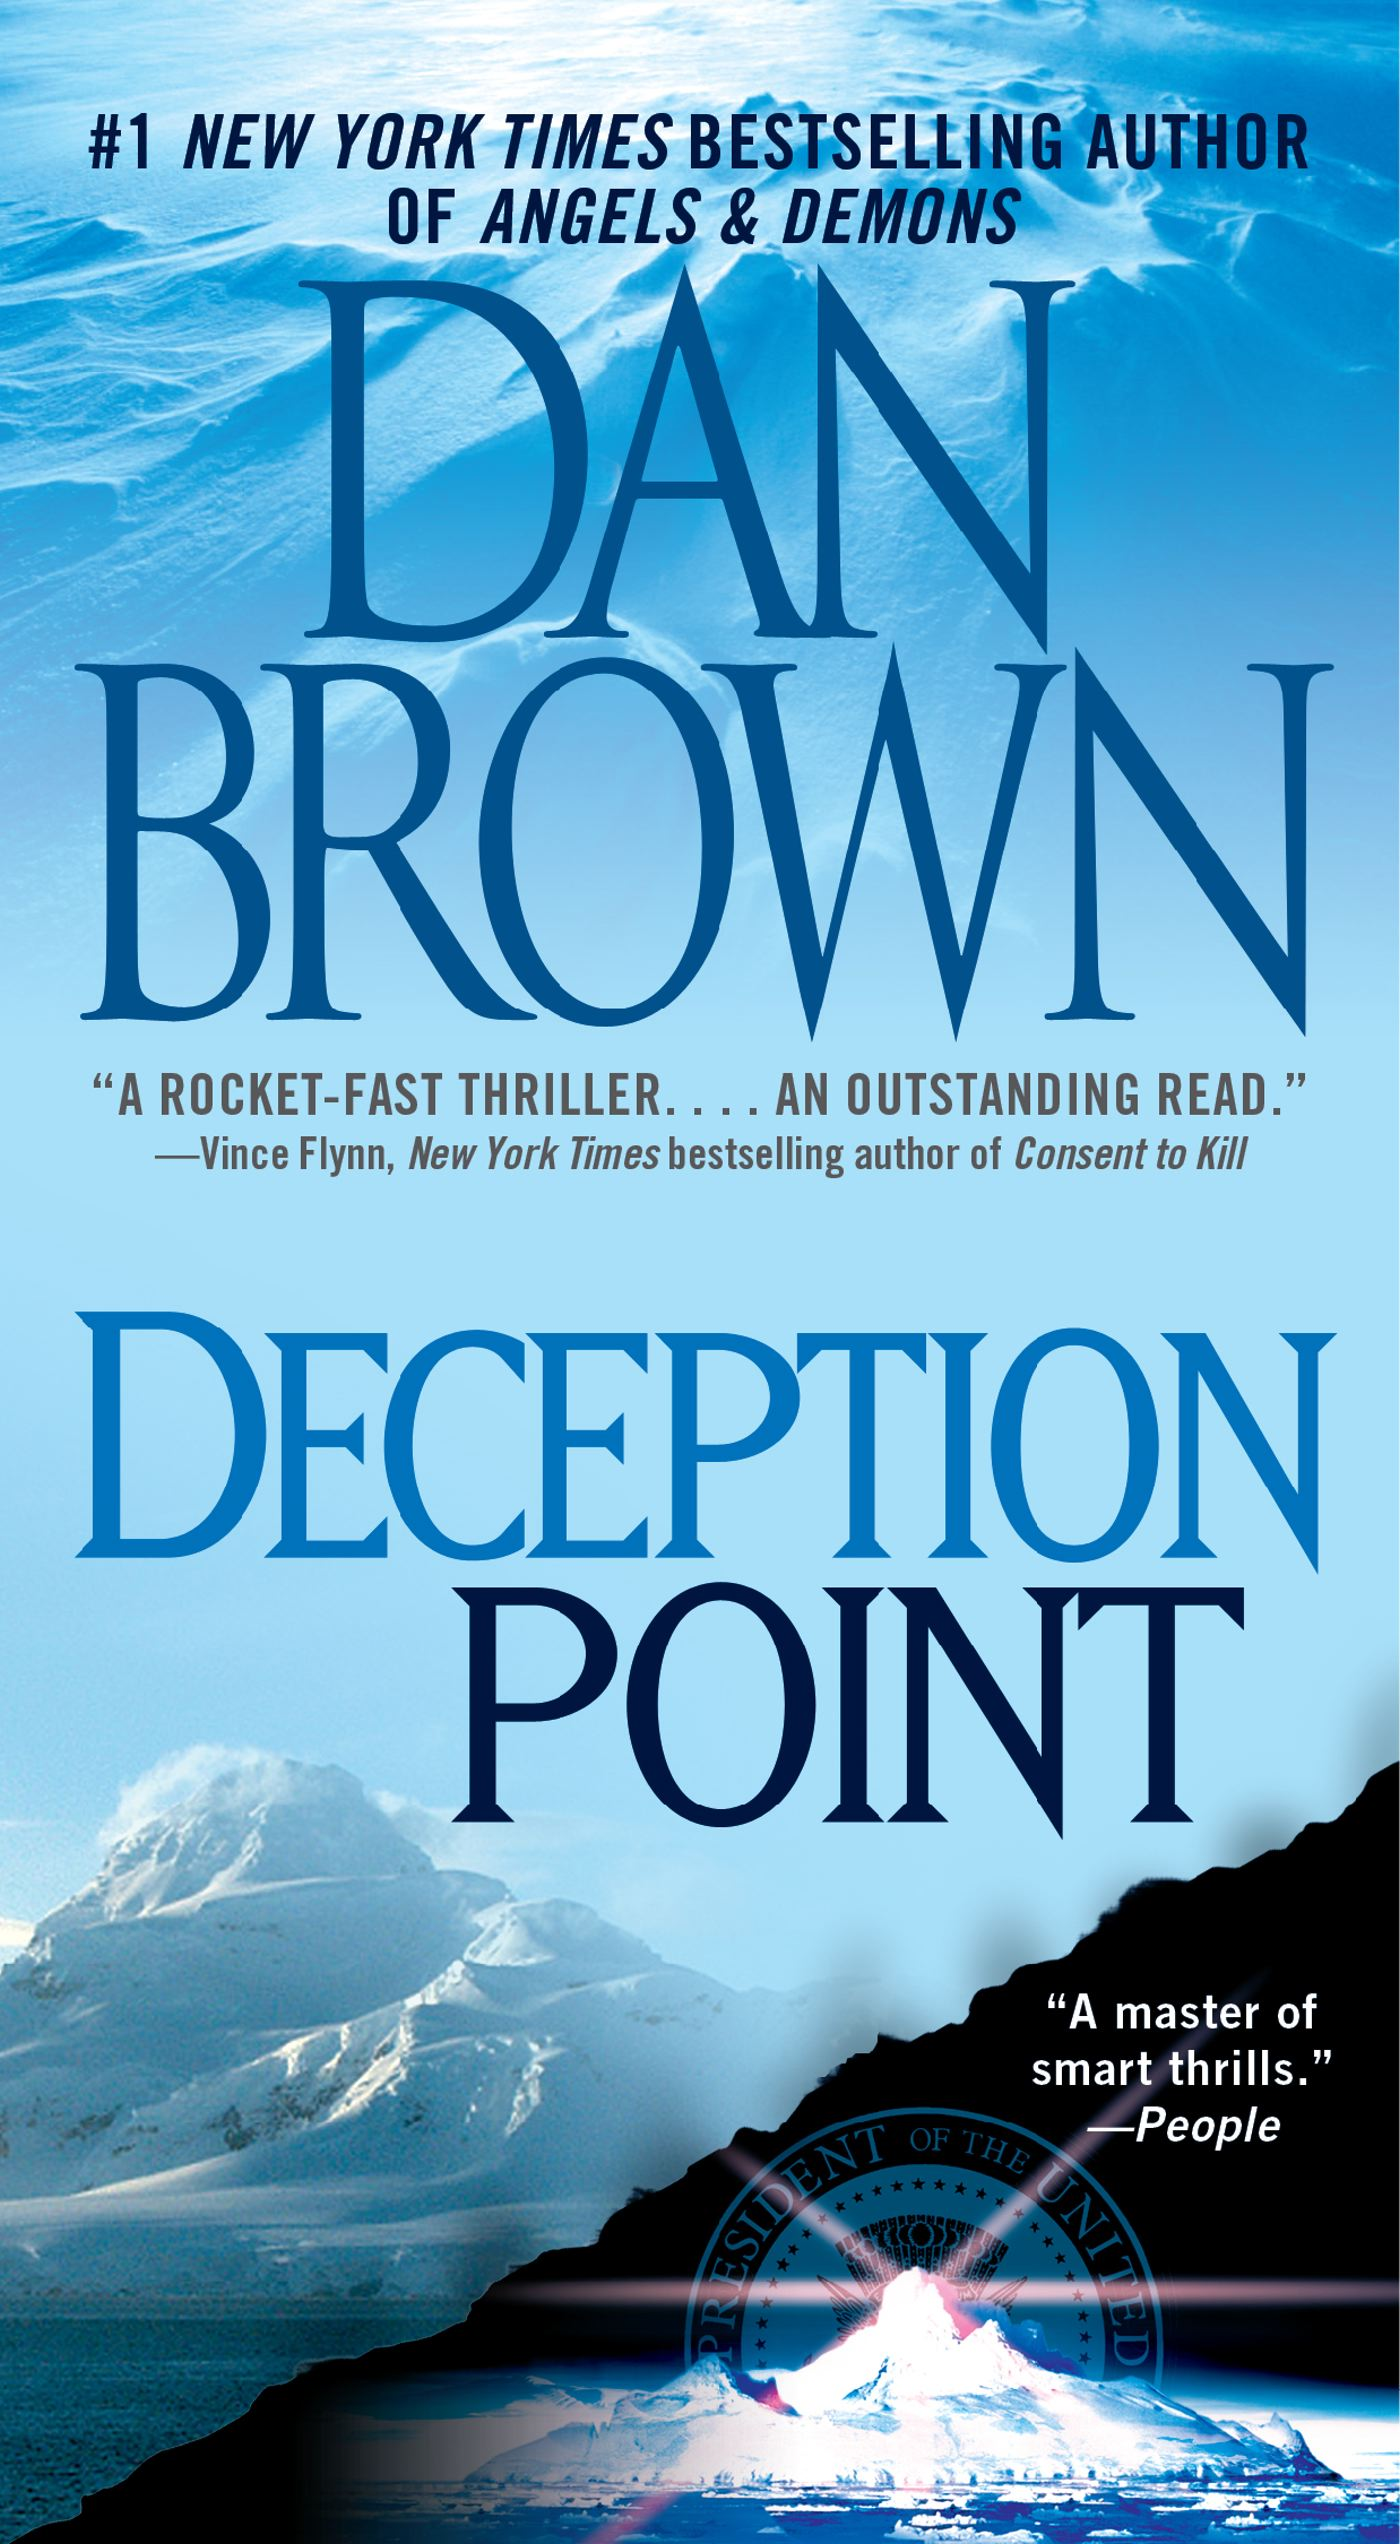 Deception point 9781416524809 hr